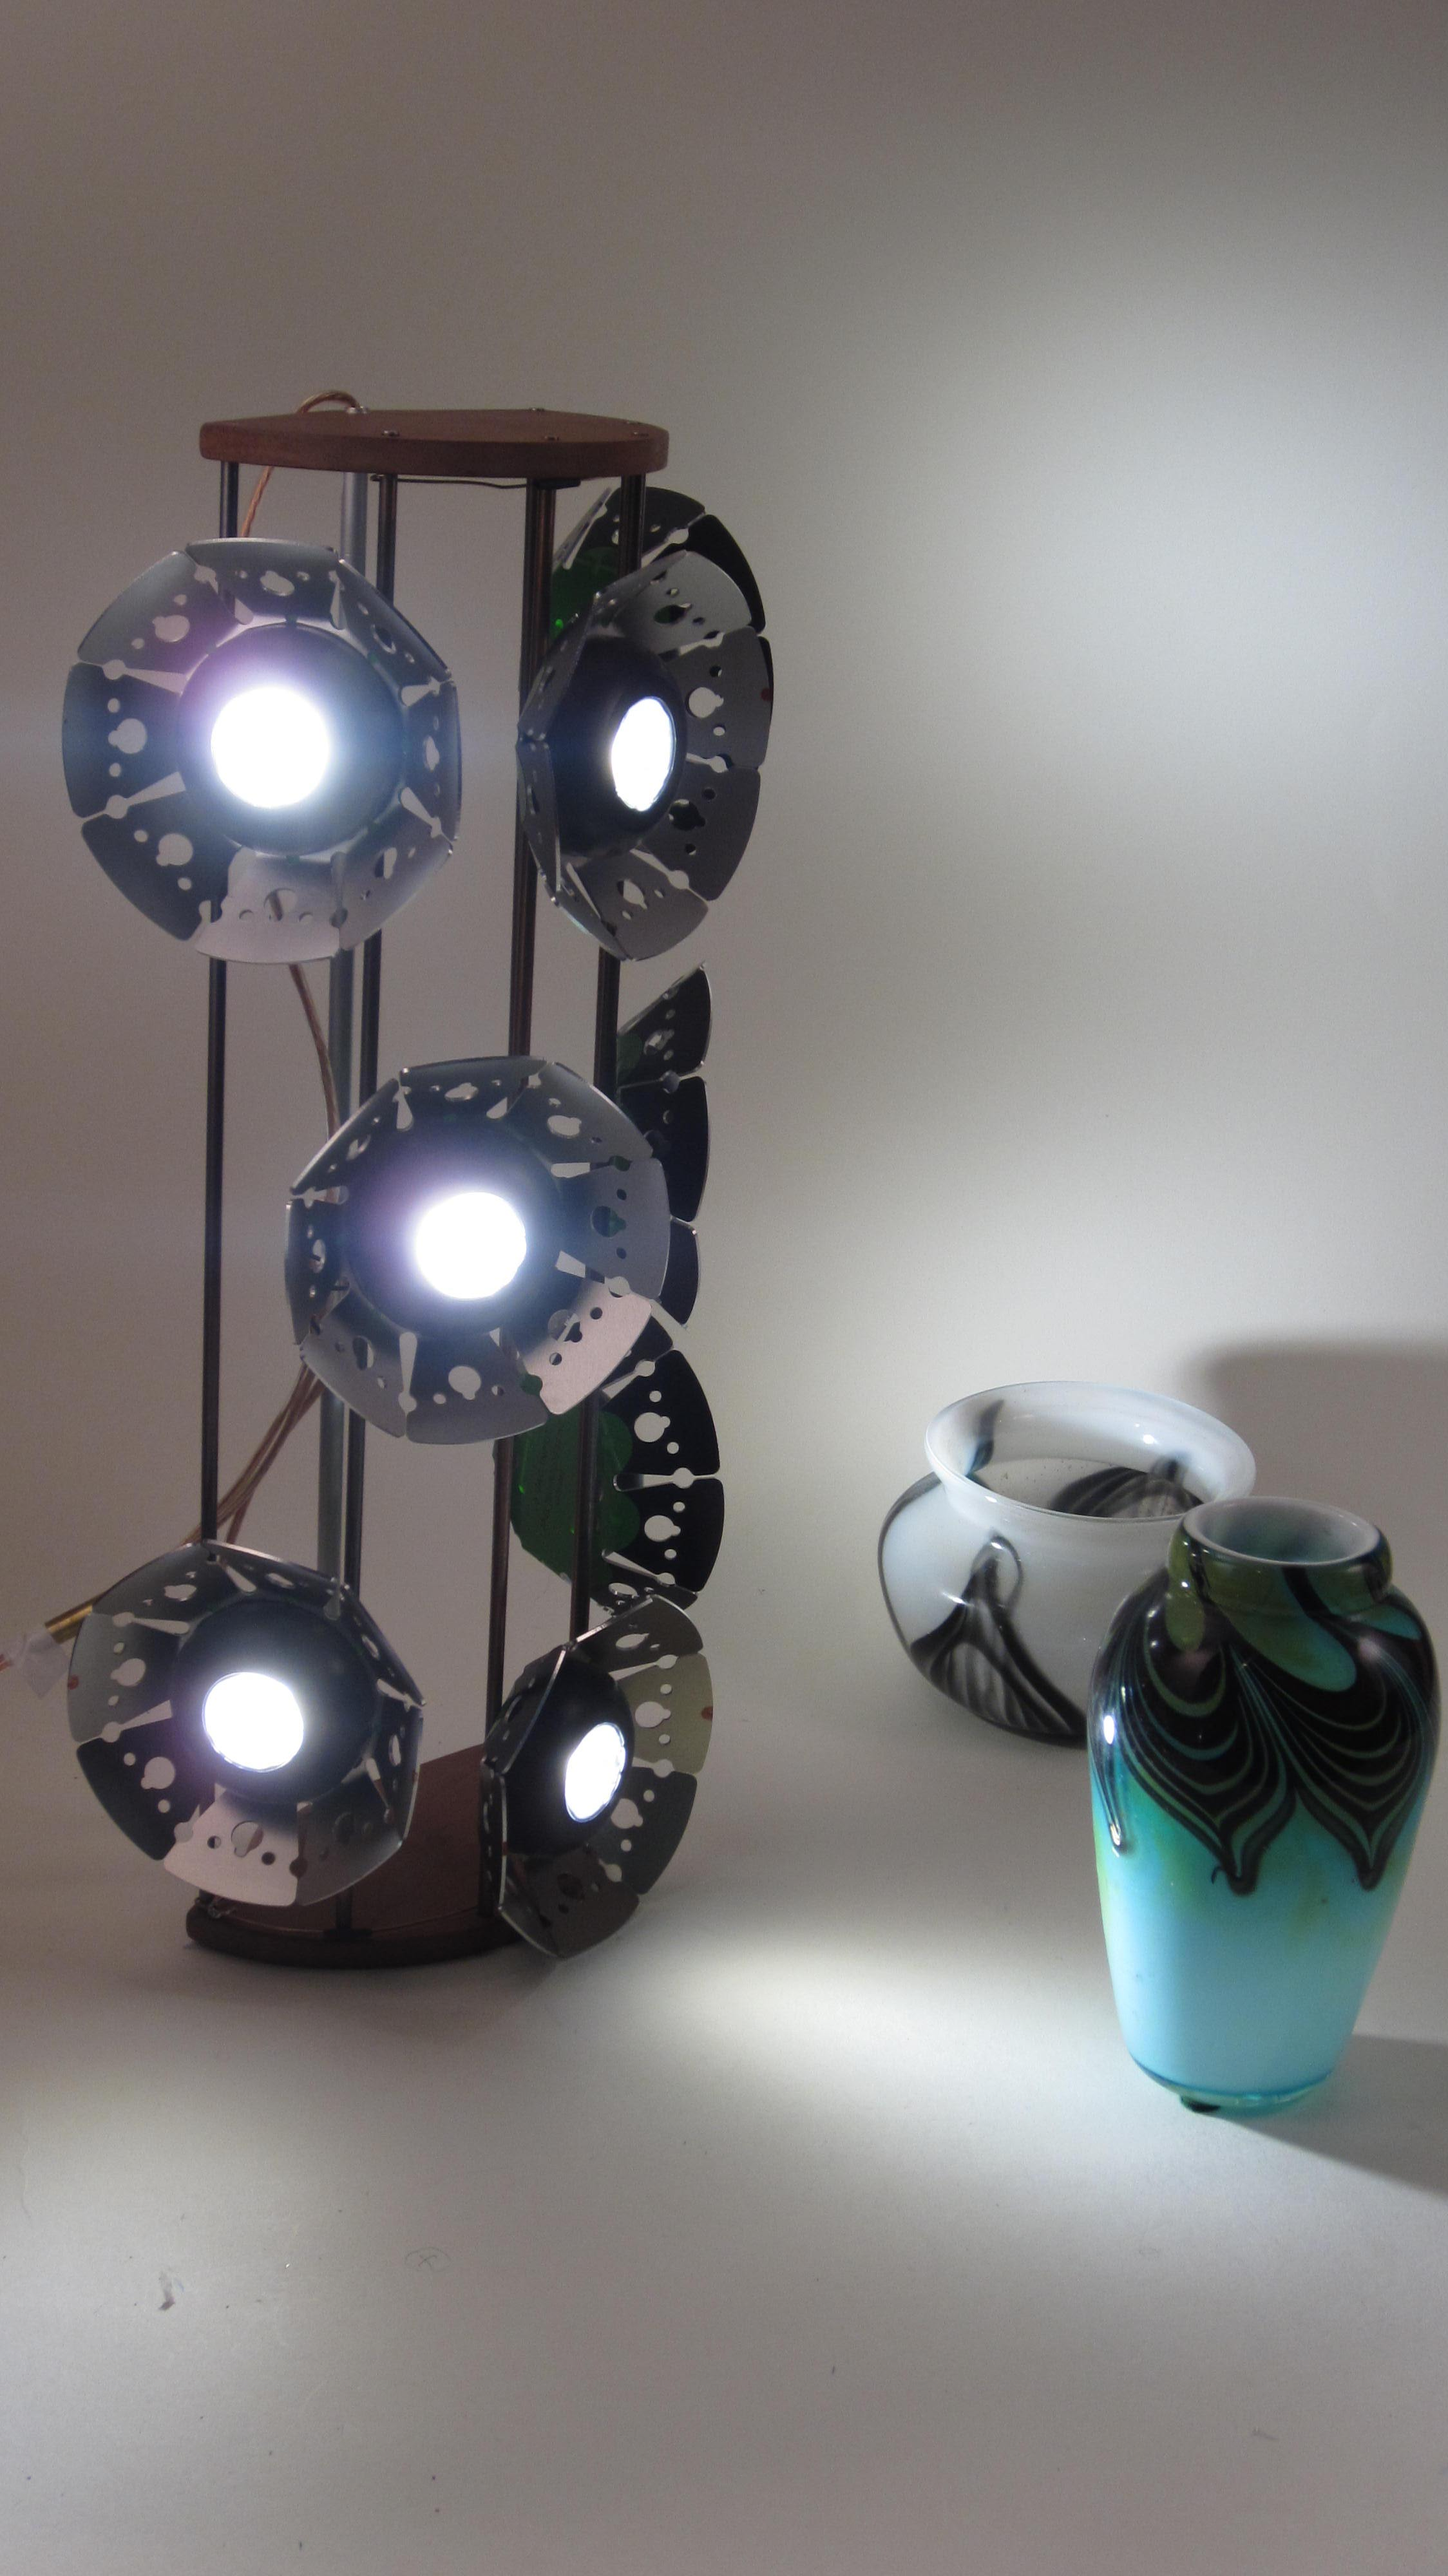 Rod fixture with LED pucks